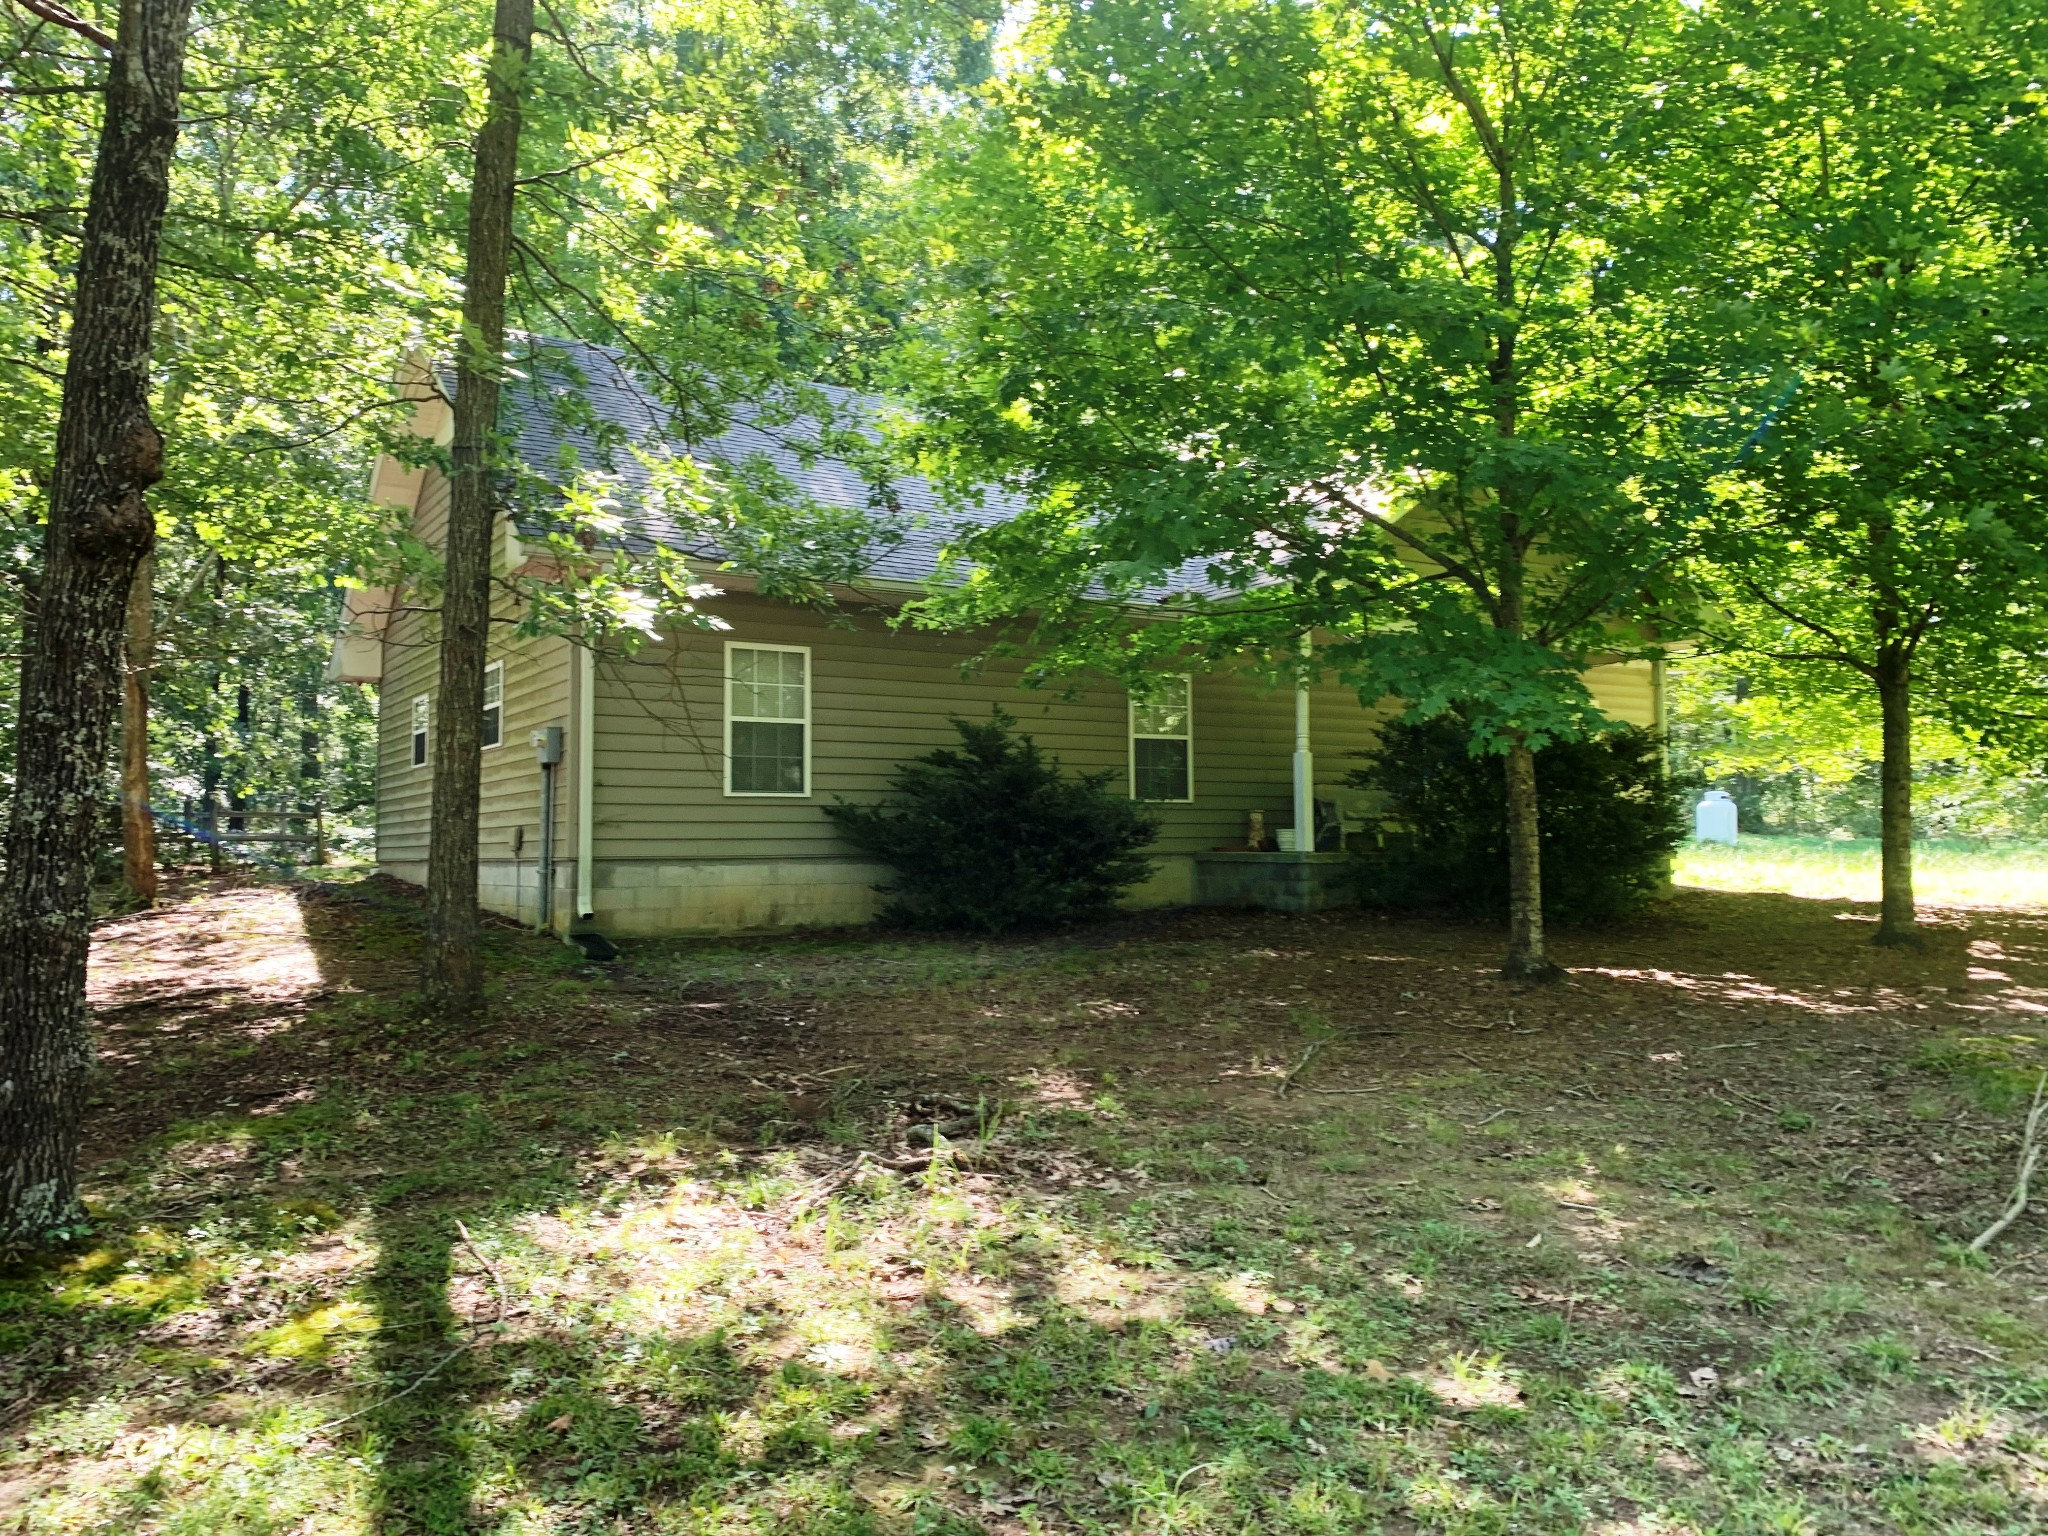 "Shop home and 9.94 acres ~ 40x31 Shop w/2 garage doors,1 bedroom, 1 bath, kitchen, living room & concrete & tile flooring ~ Shop is set up for woodworking with ""in-floor"" vac system ~ Some marketable timber ~ Lots of widlife ! Located just 3 miles off of Highway 96 and I-40 Exit 182 ~ Williamson County schools ~ Great area with lots of nice homes nearby!"